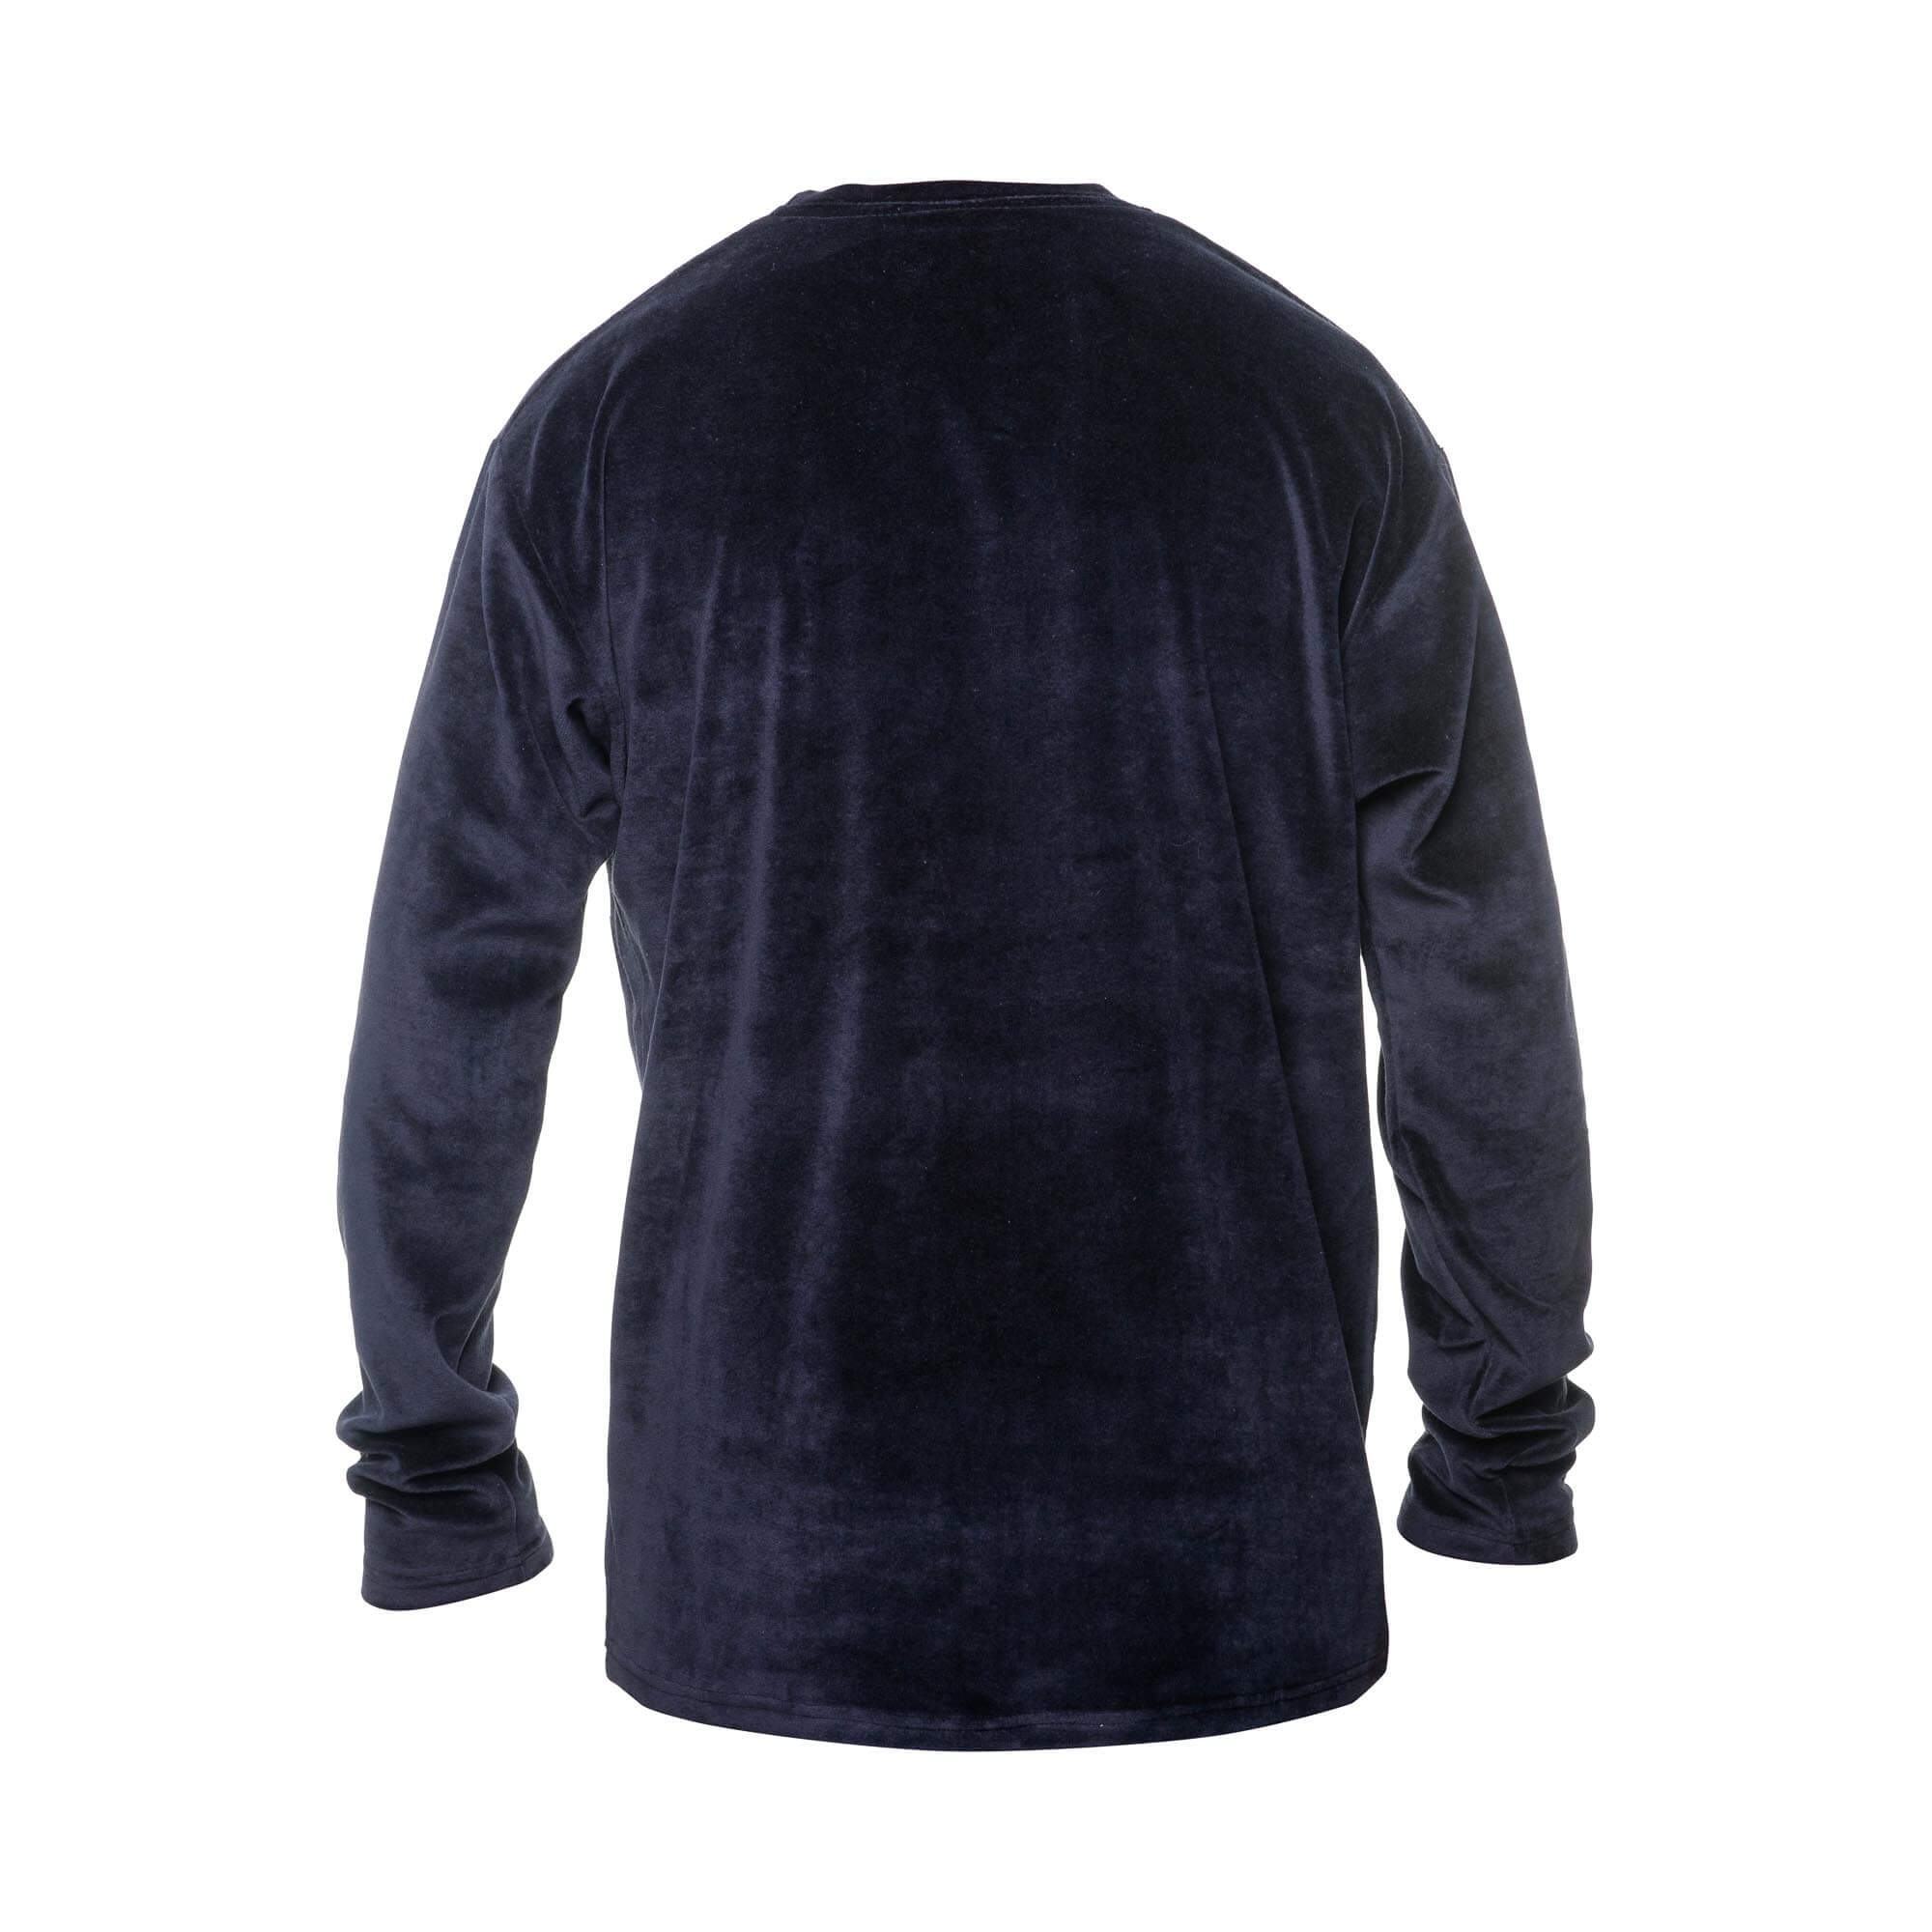 velvet sweater black back